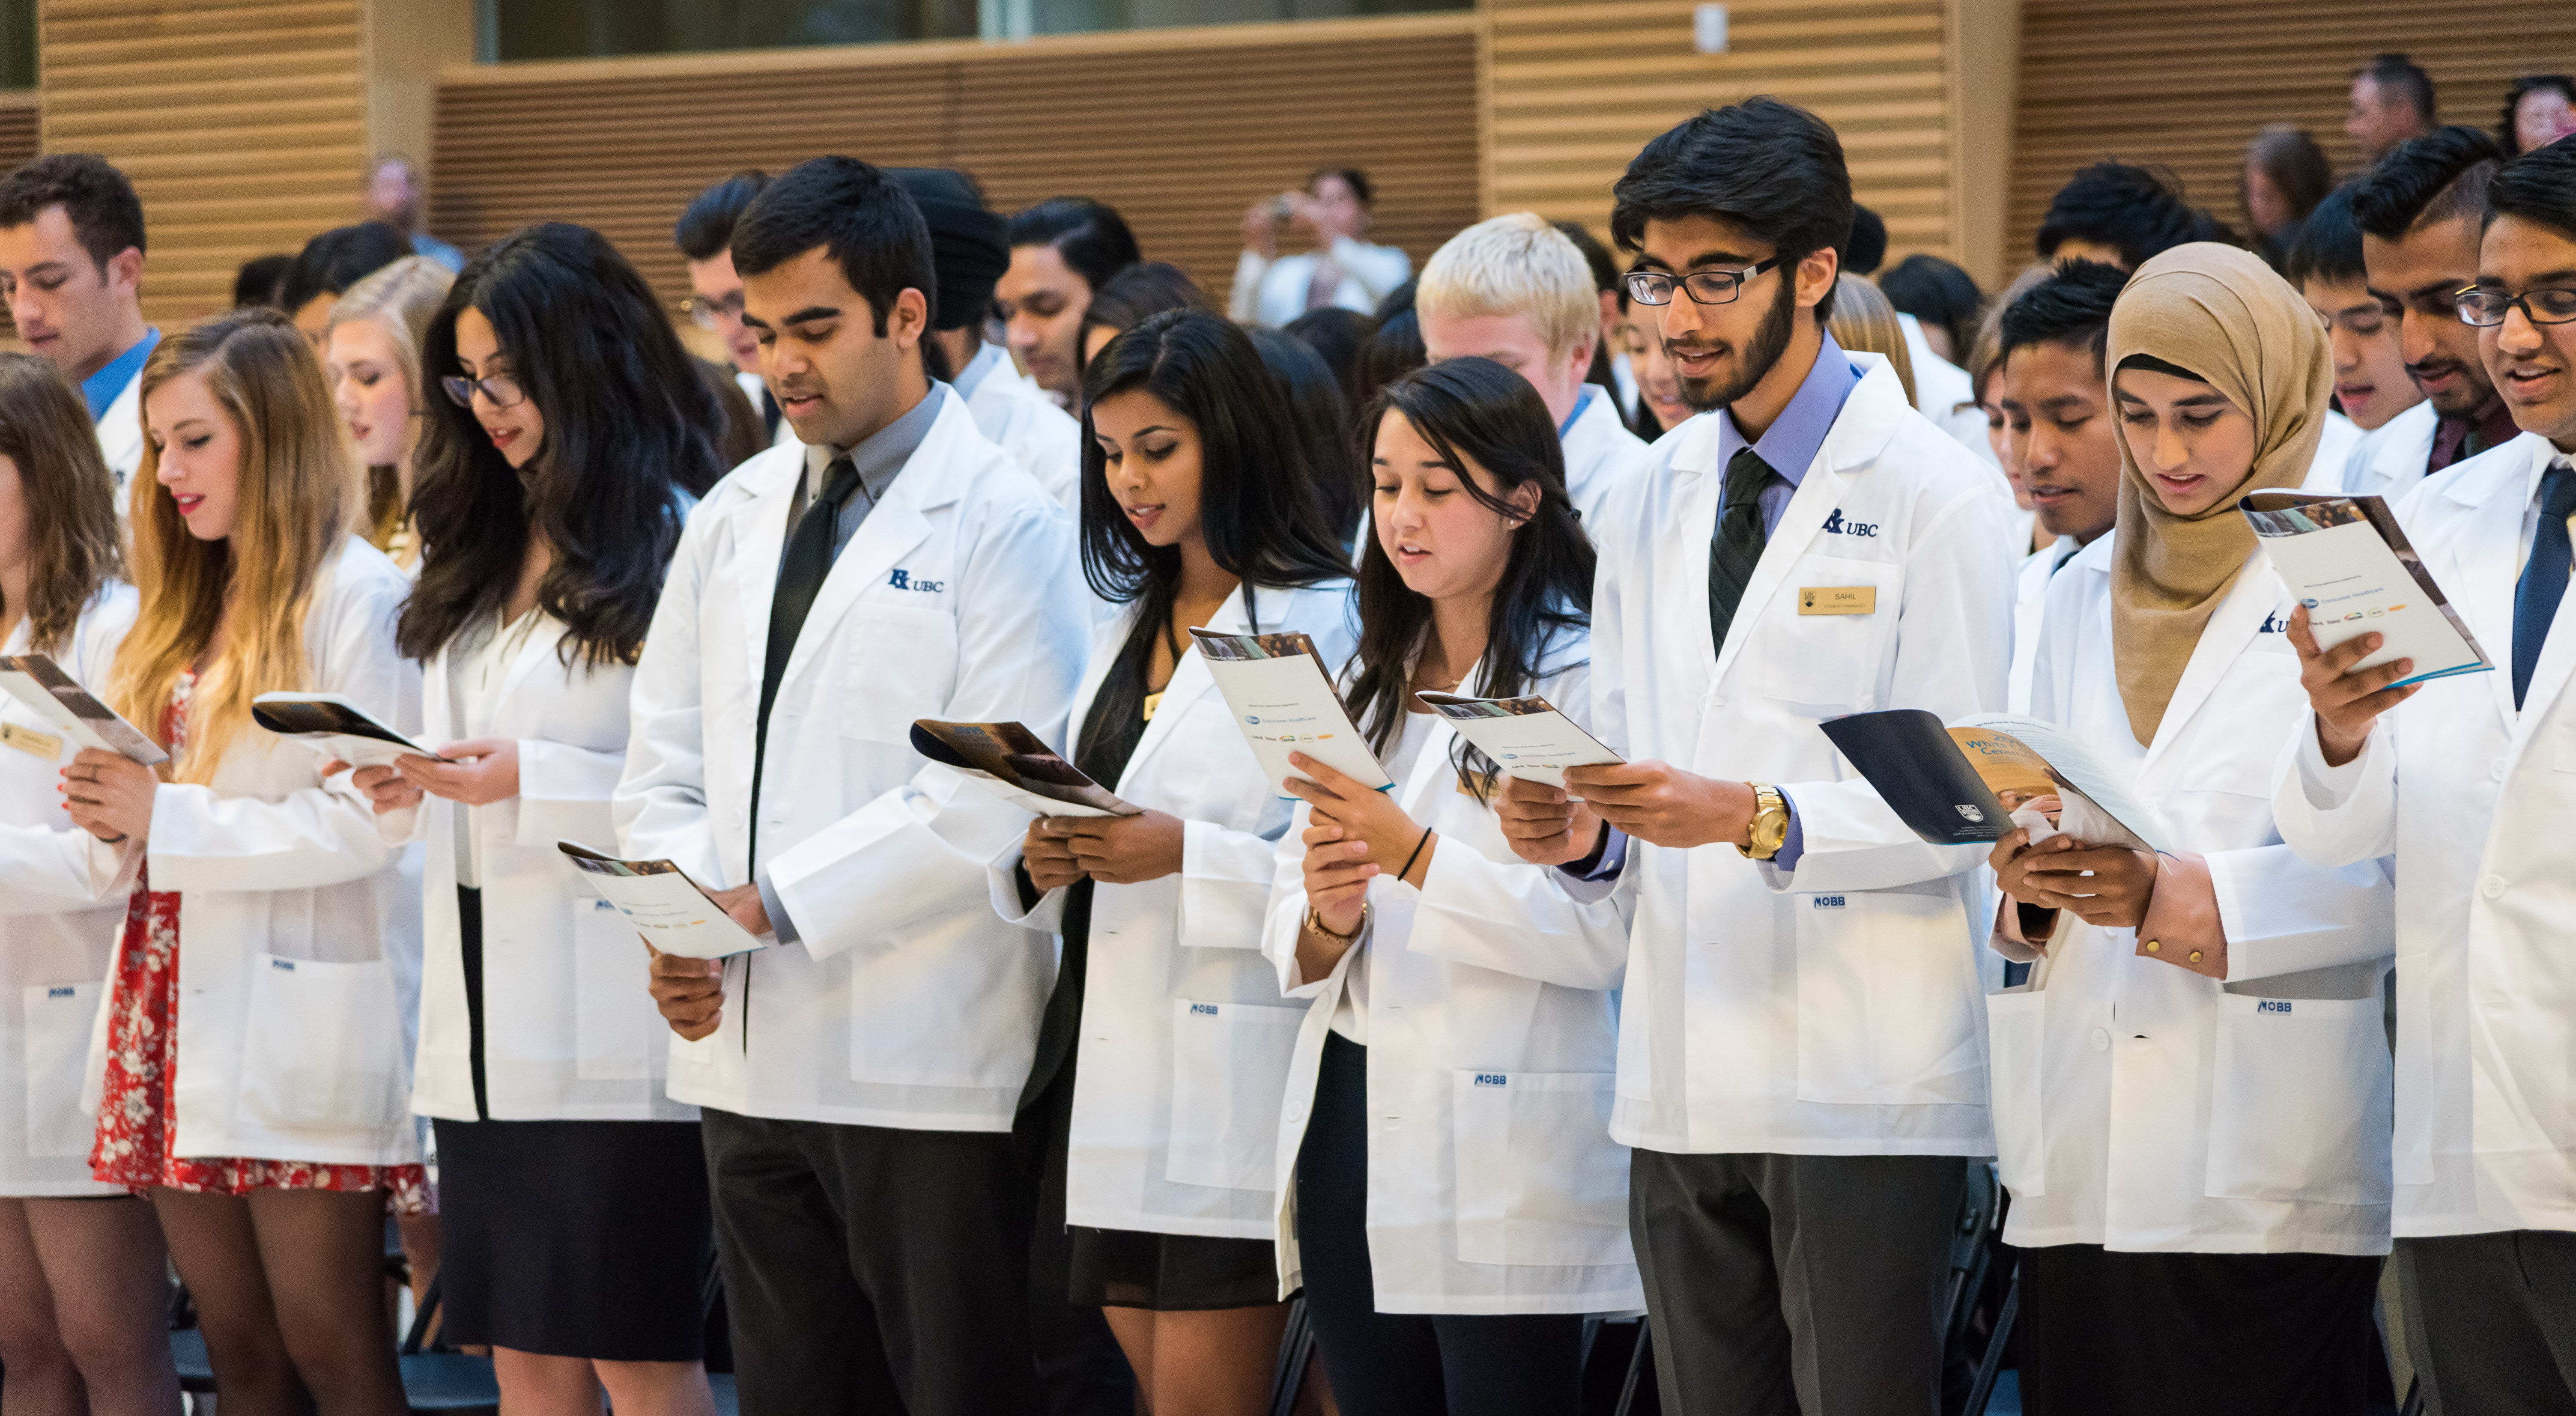 Class of 2019 at the 2015 White Coat Ceremony